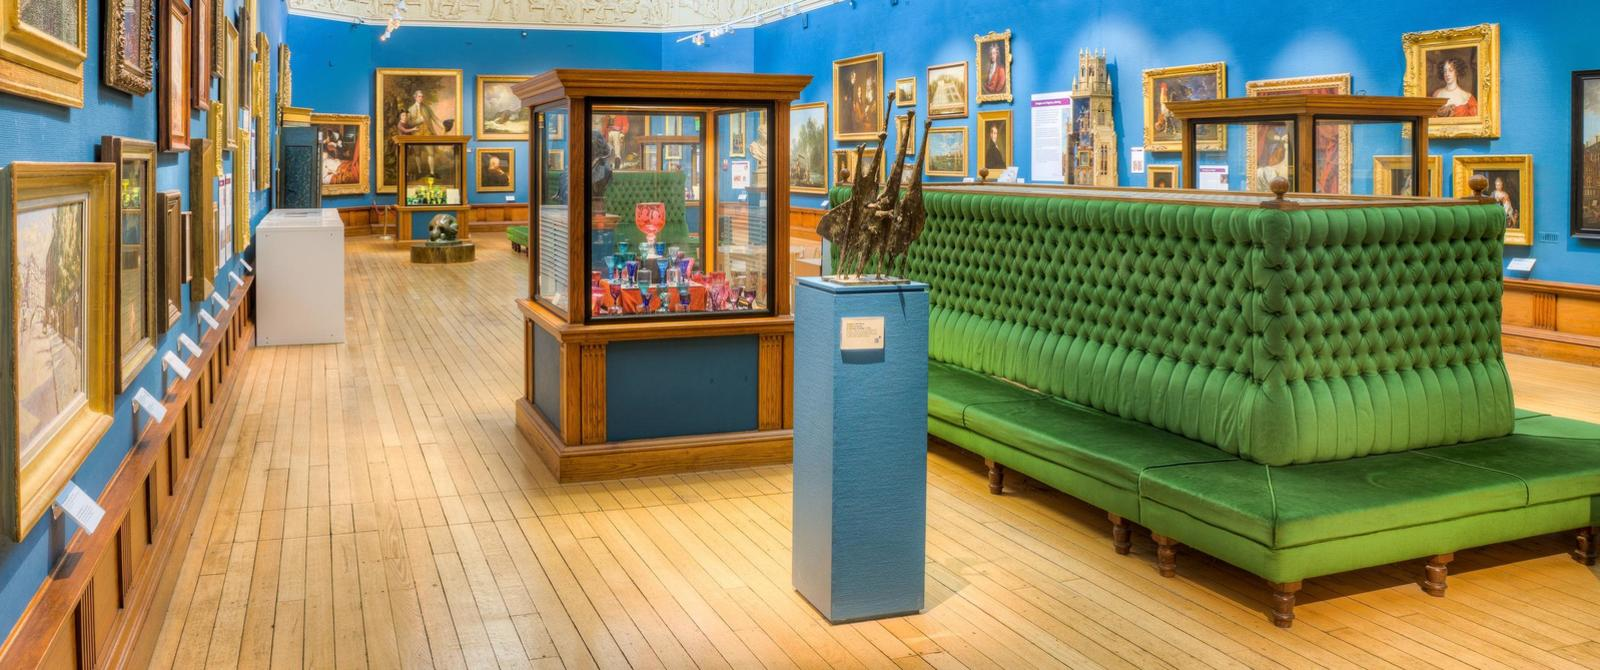 Image: Permanent collection at Victoria Art Gallery